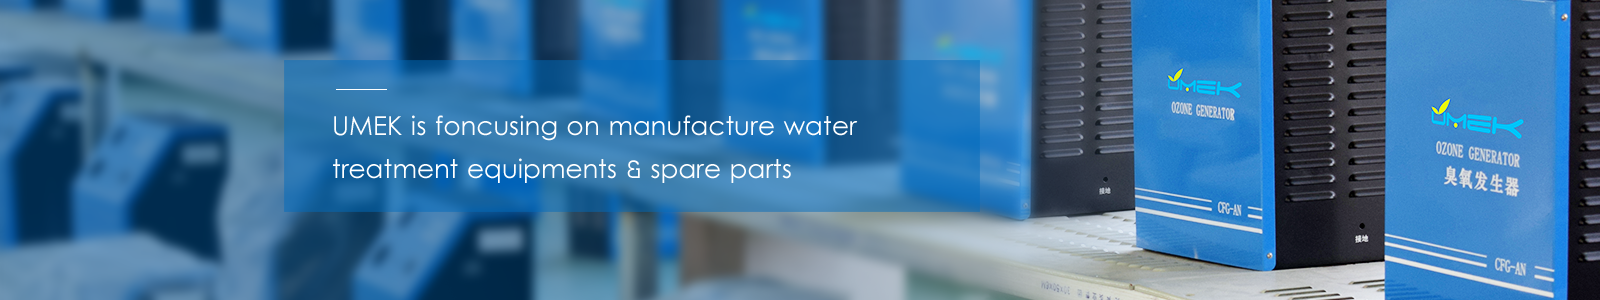 UMEK has specialized in manufacture and customized water treatment equipments & spare parts for 21 years